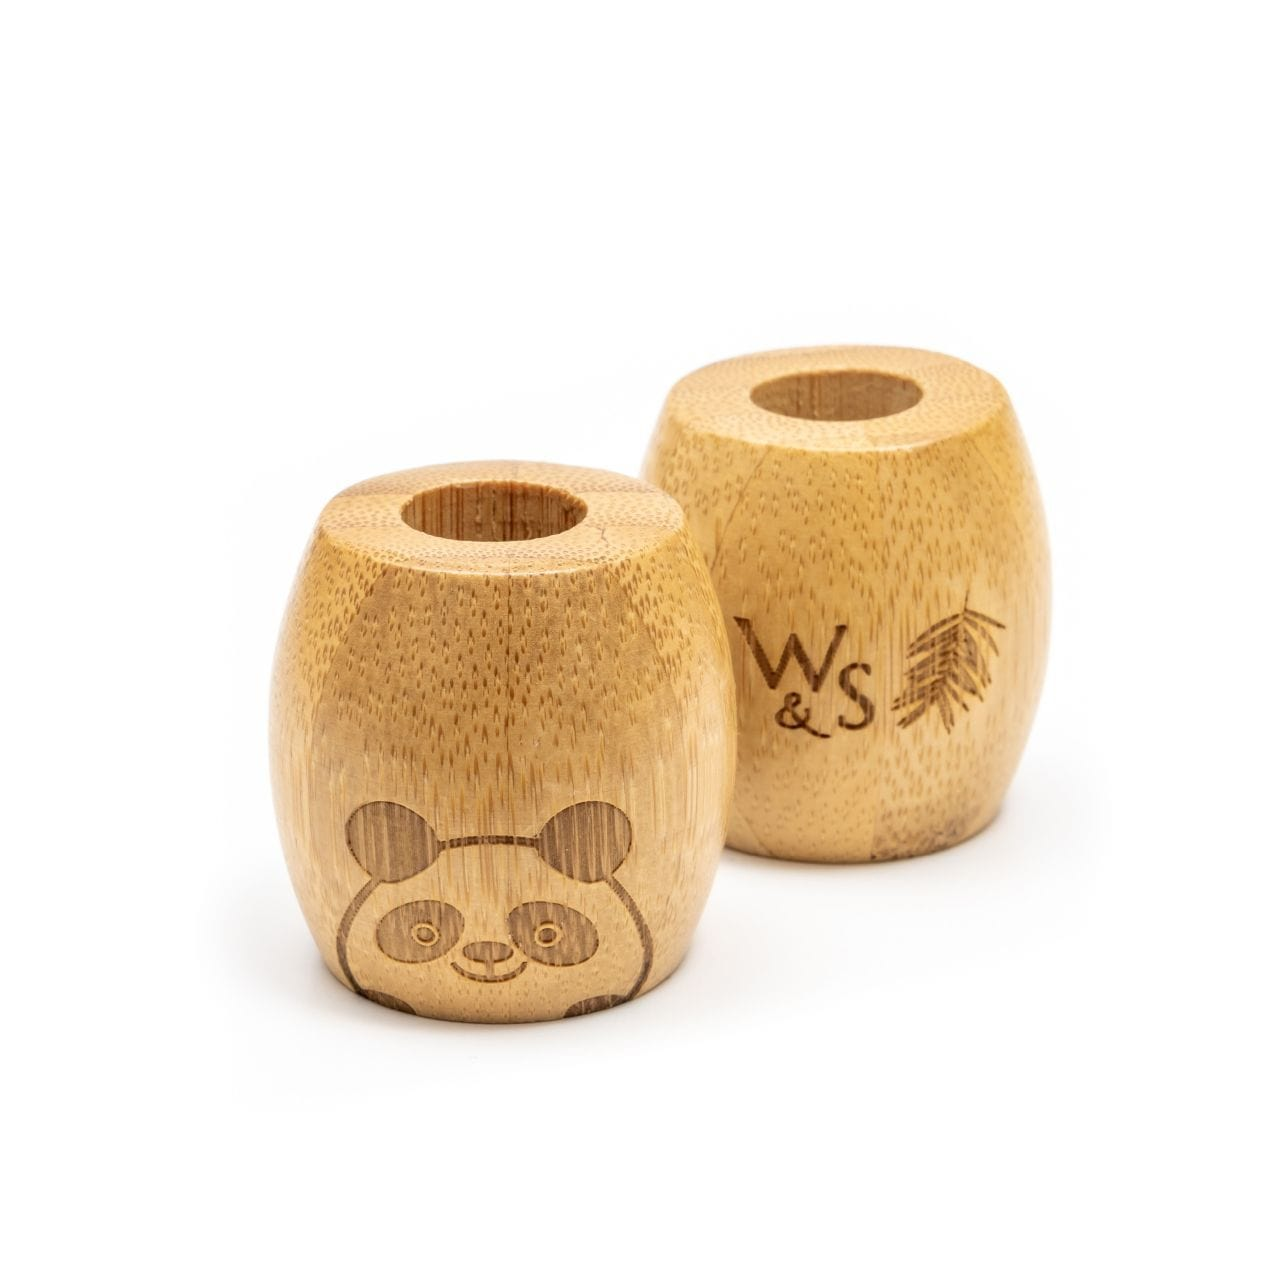 Wild & Stone - Children's Bamboo Toothbrush Holder